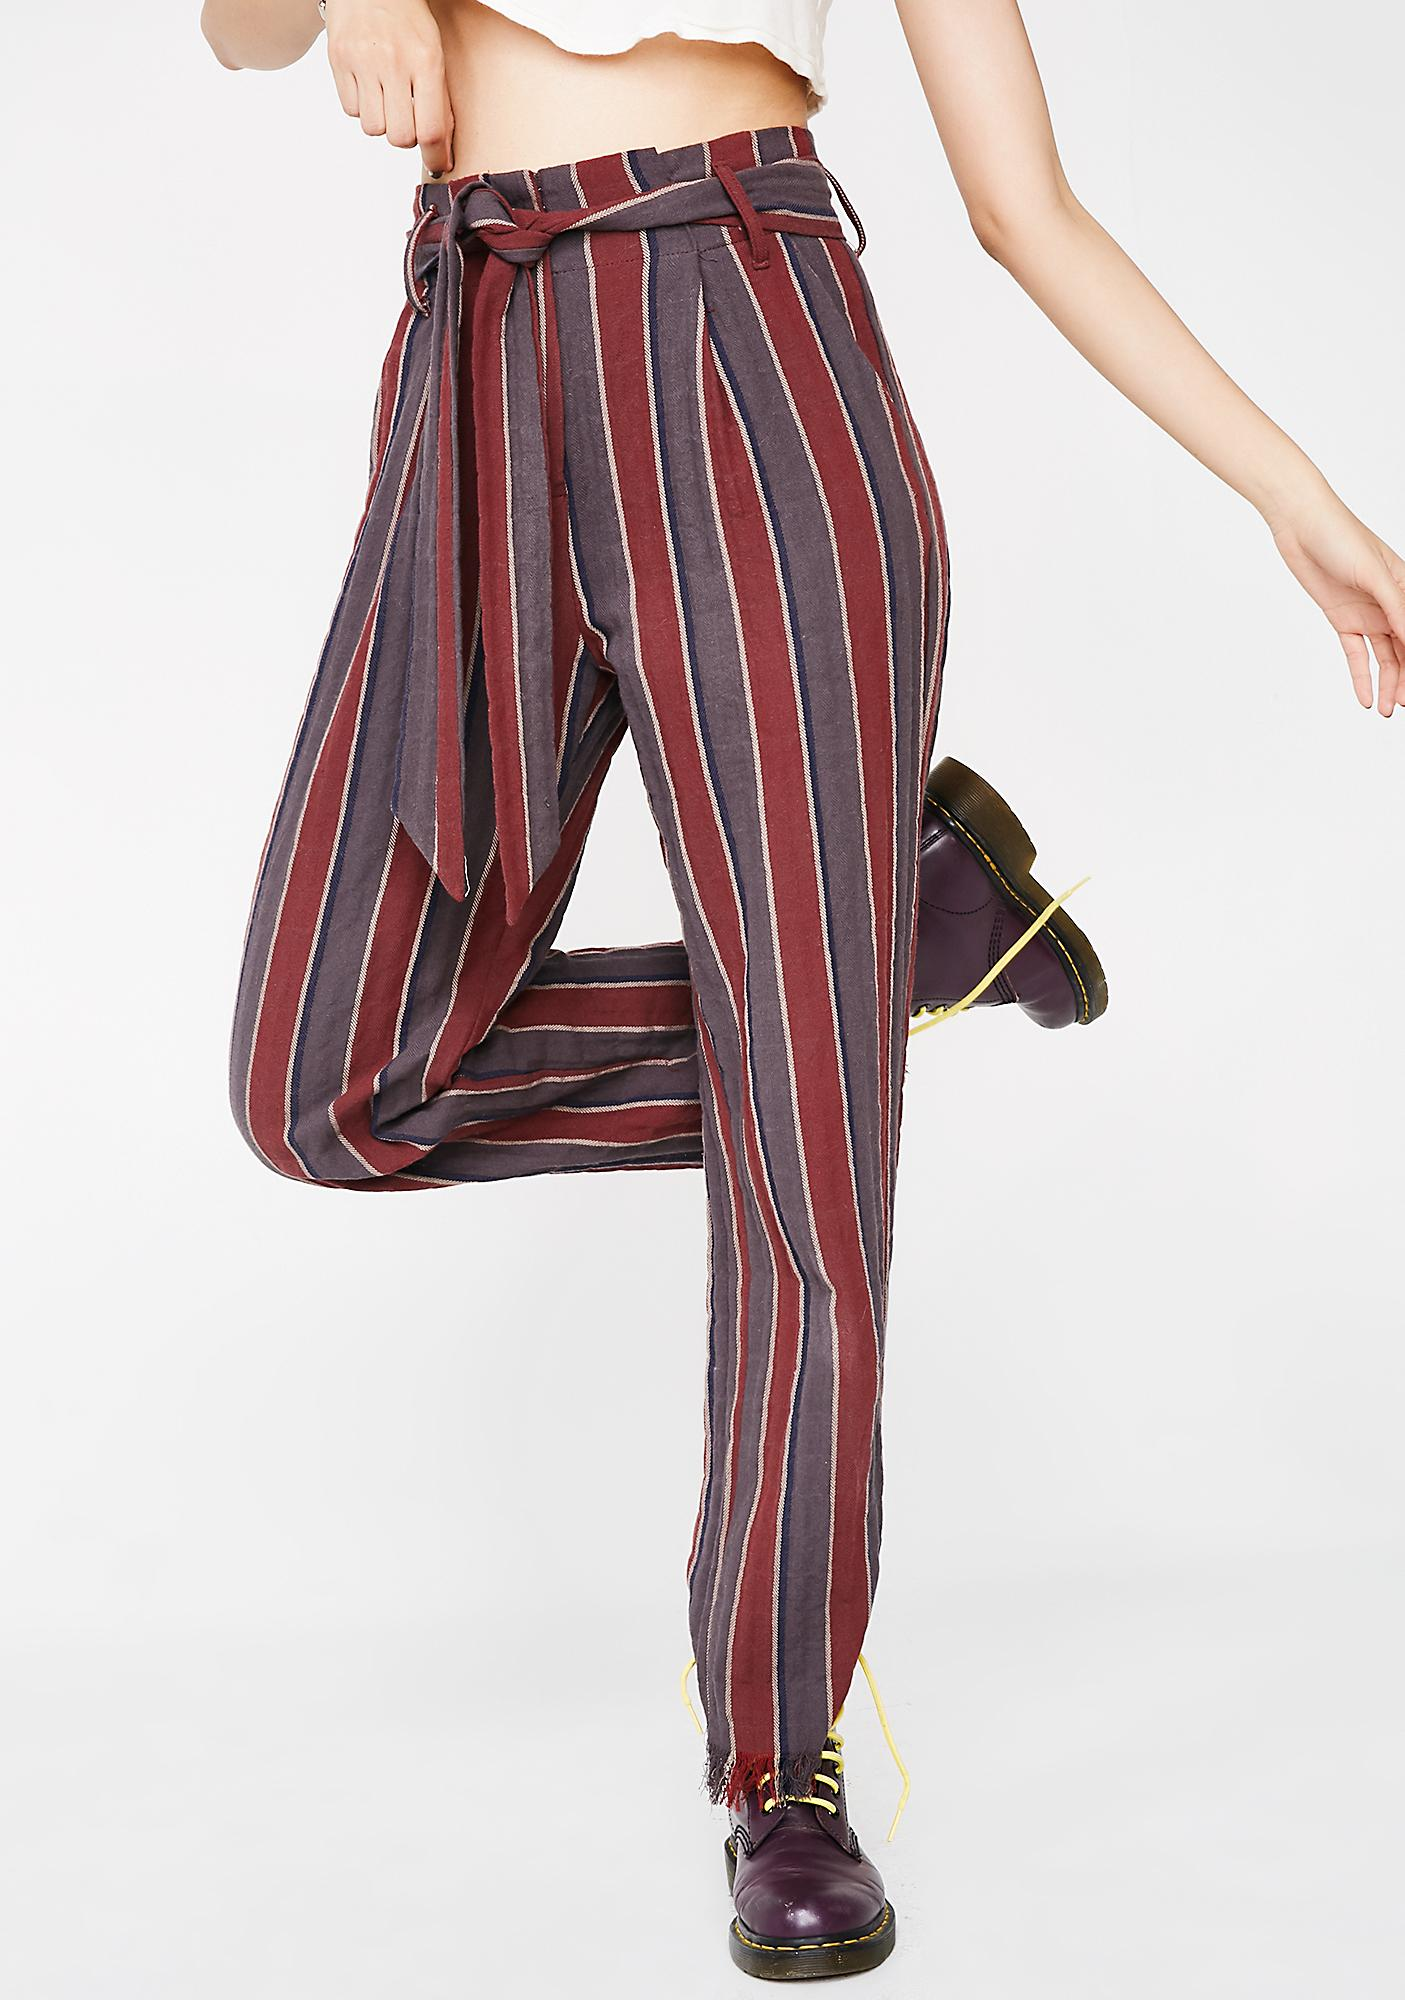 Haight Street Trousers